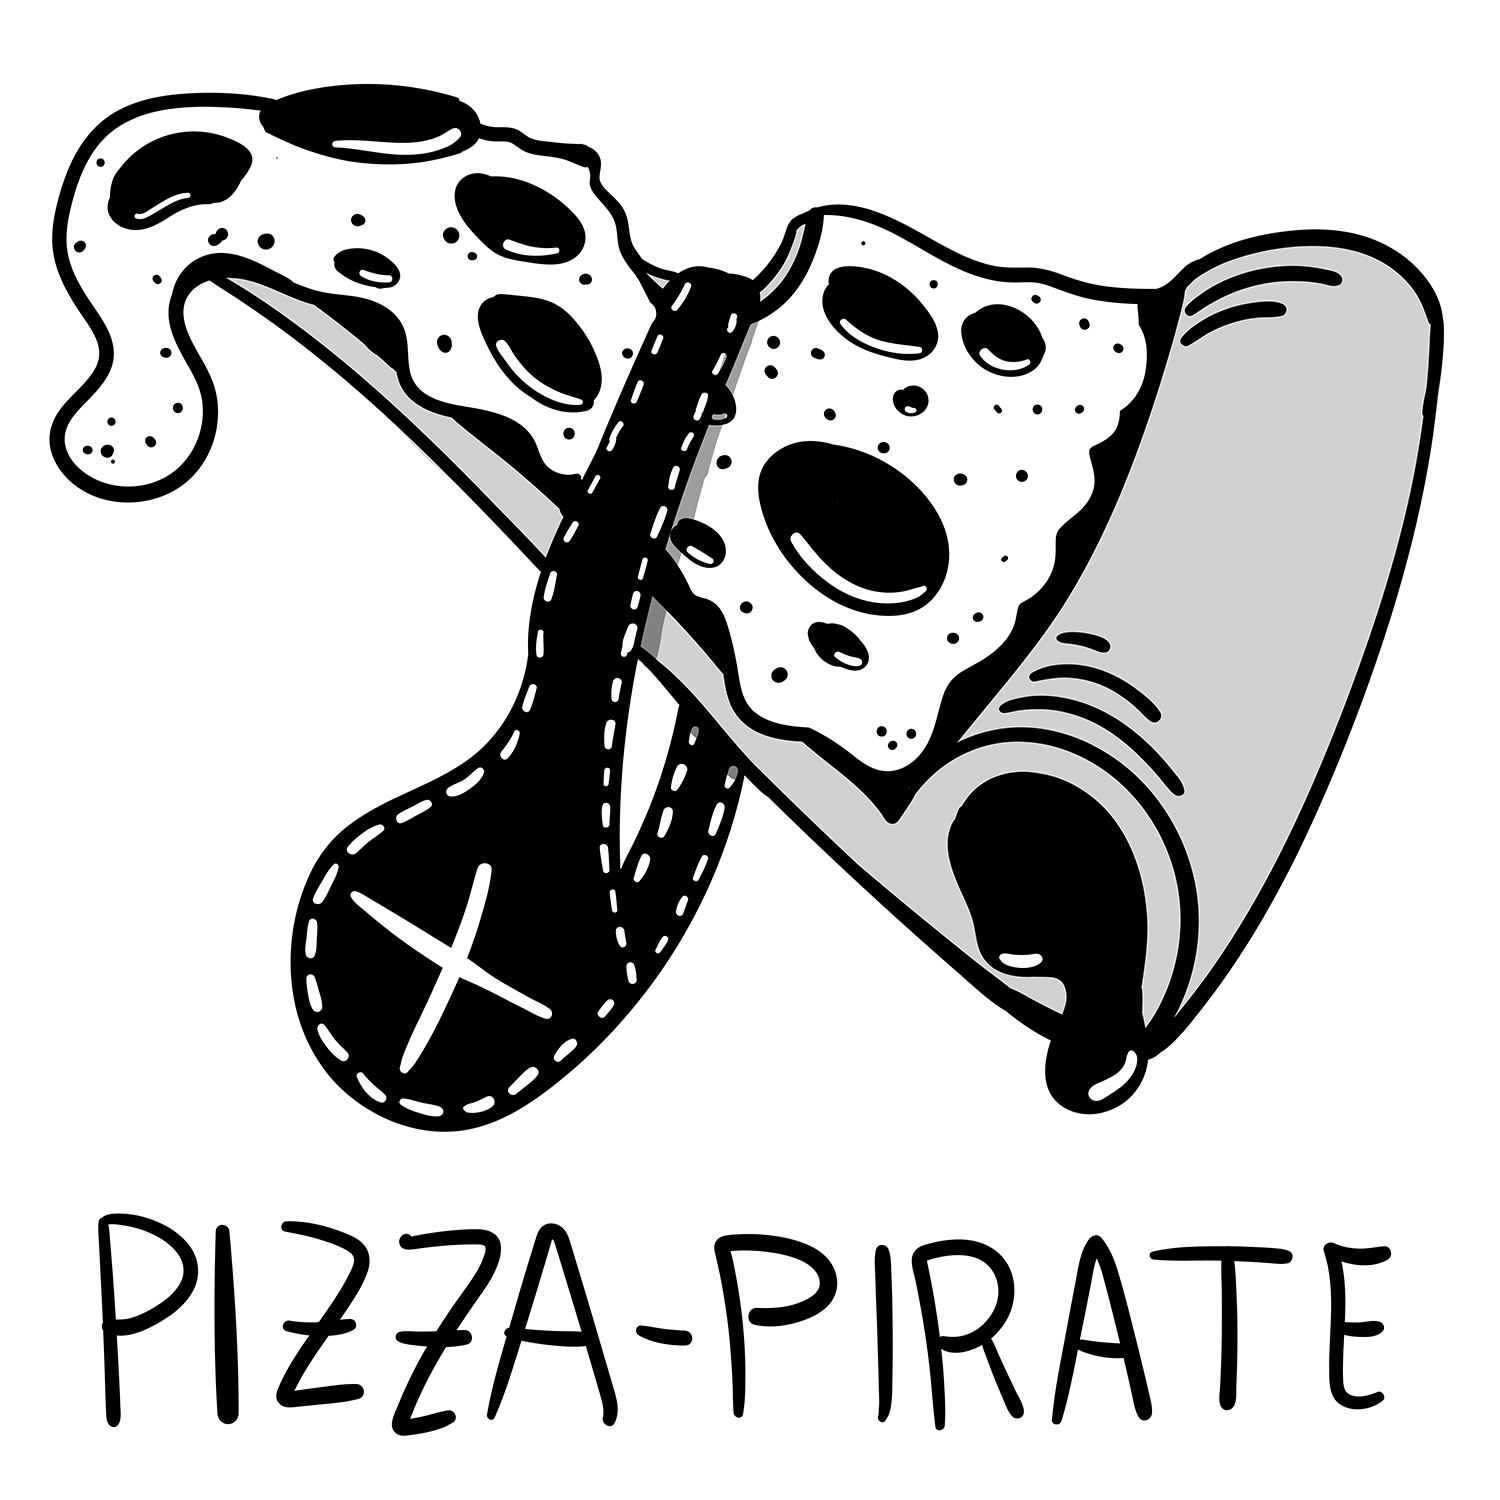 pirate pizza illustration